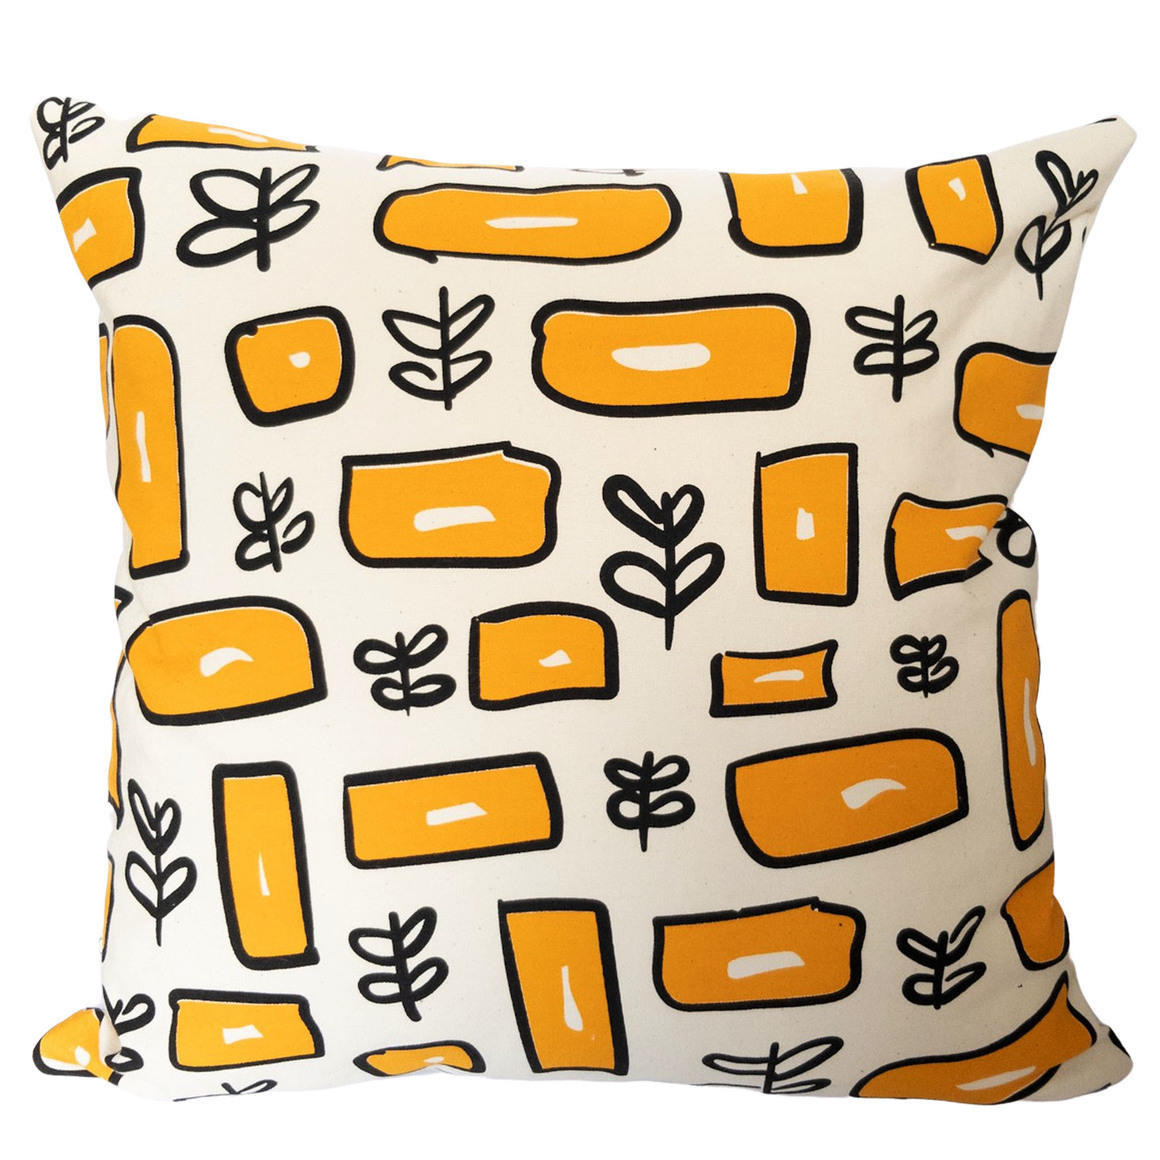 Vintage Inspired Hand Screen Printed 100% cotton square pattern cushion cover-2 Colourways-Cover Only | Trada Marketplace